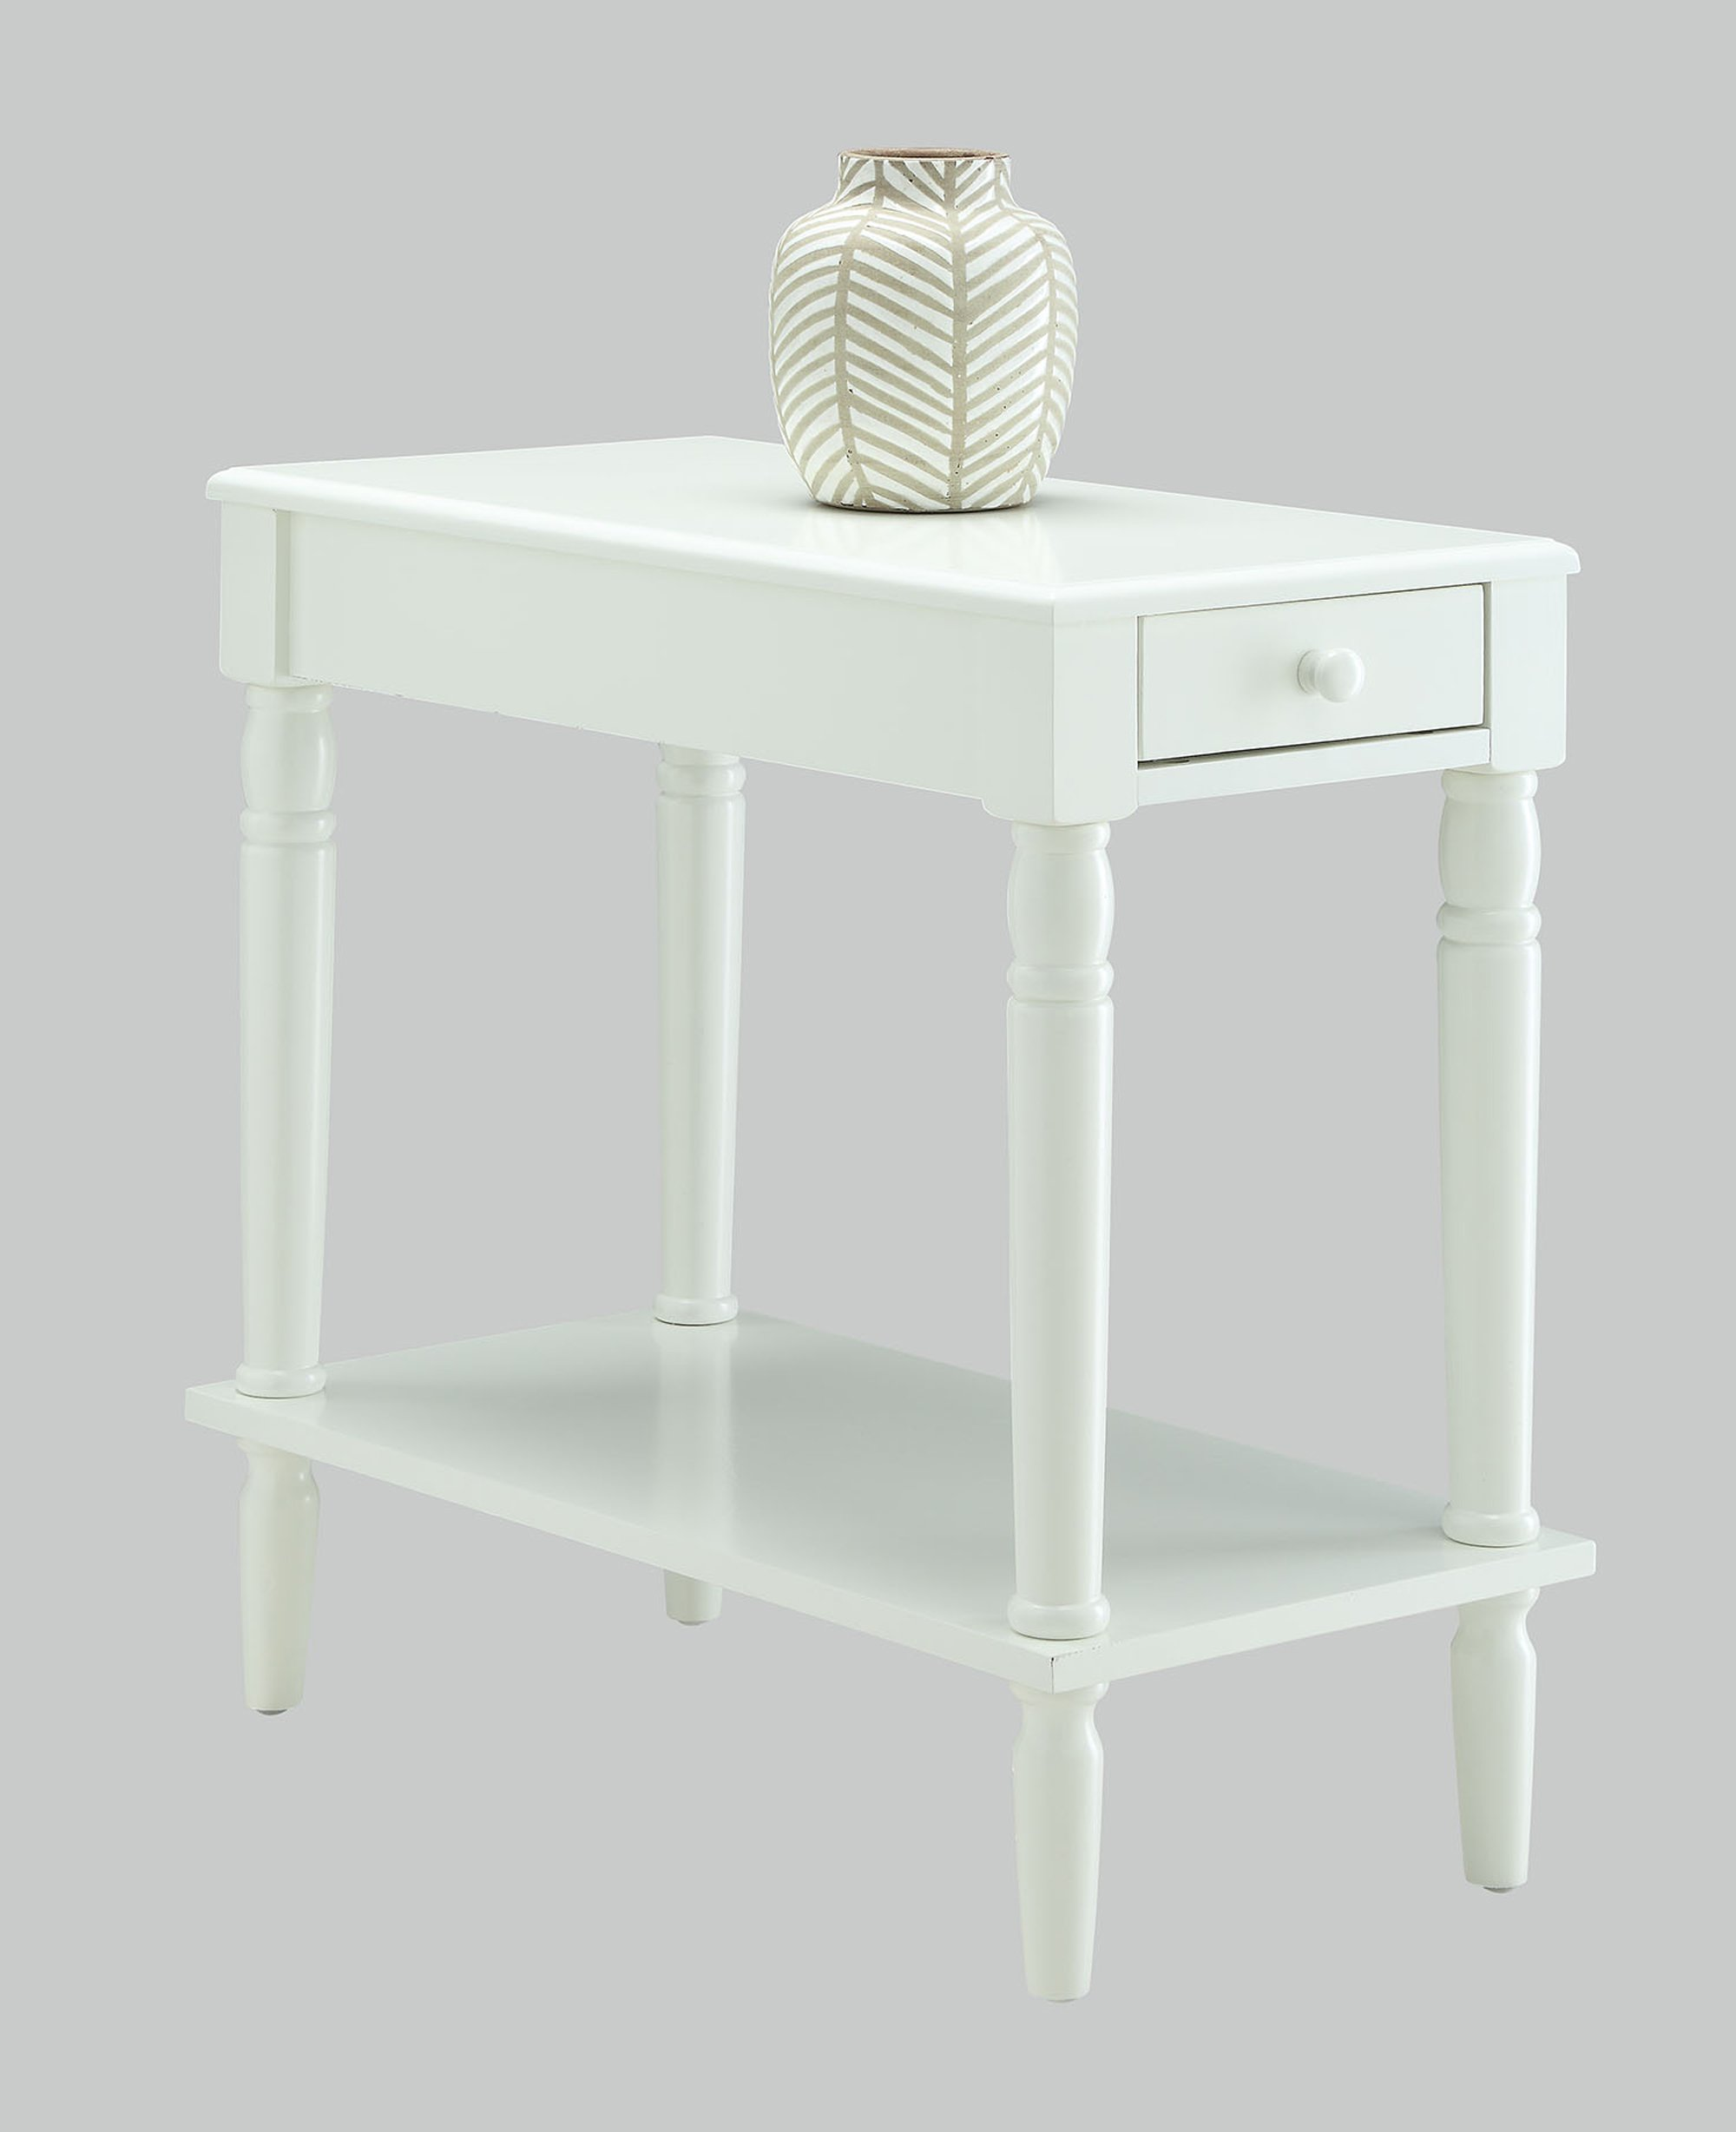 Convenience Concepts French Country No Tools Chairside Table, White